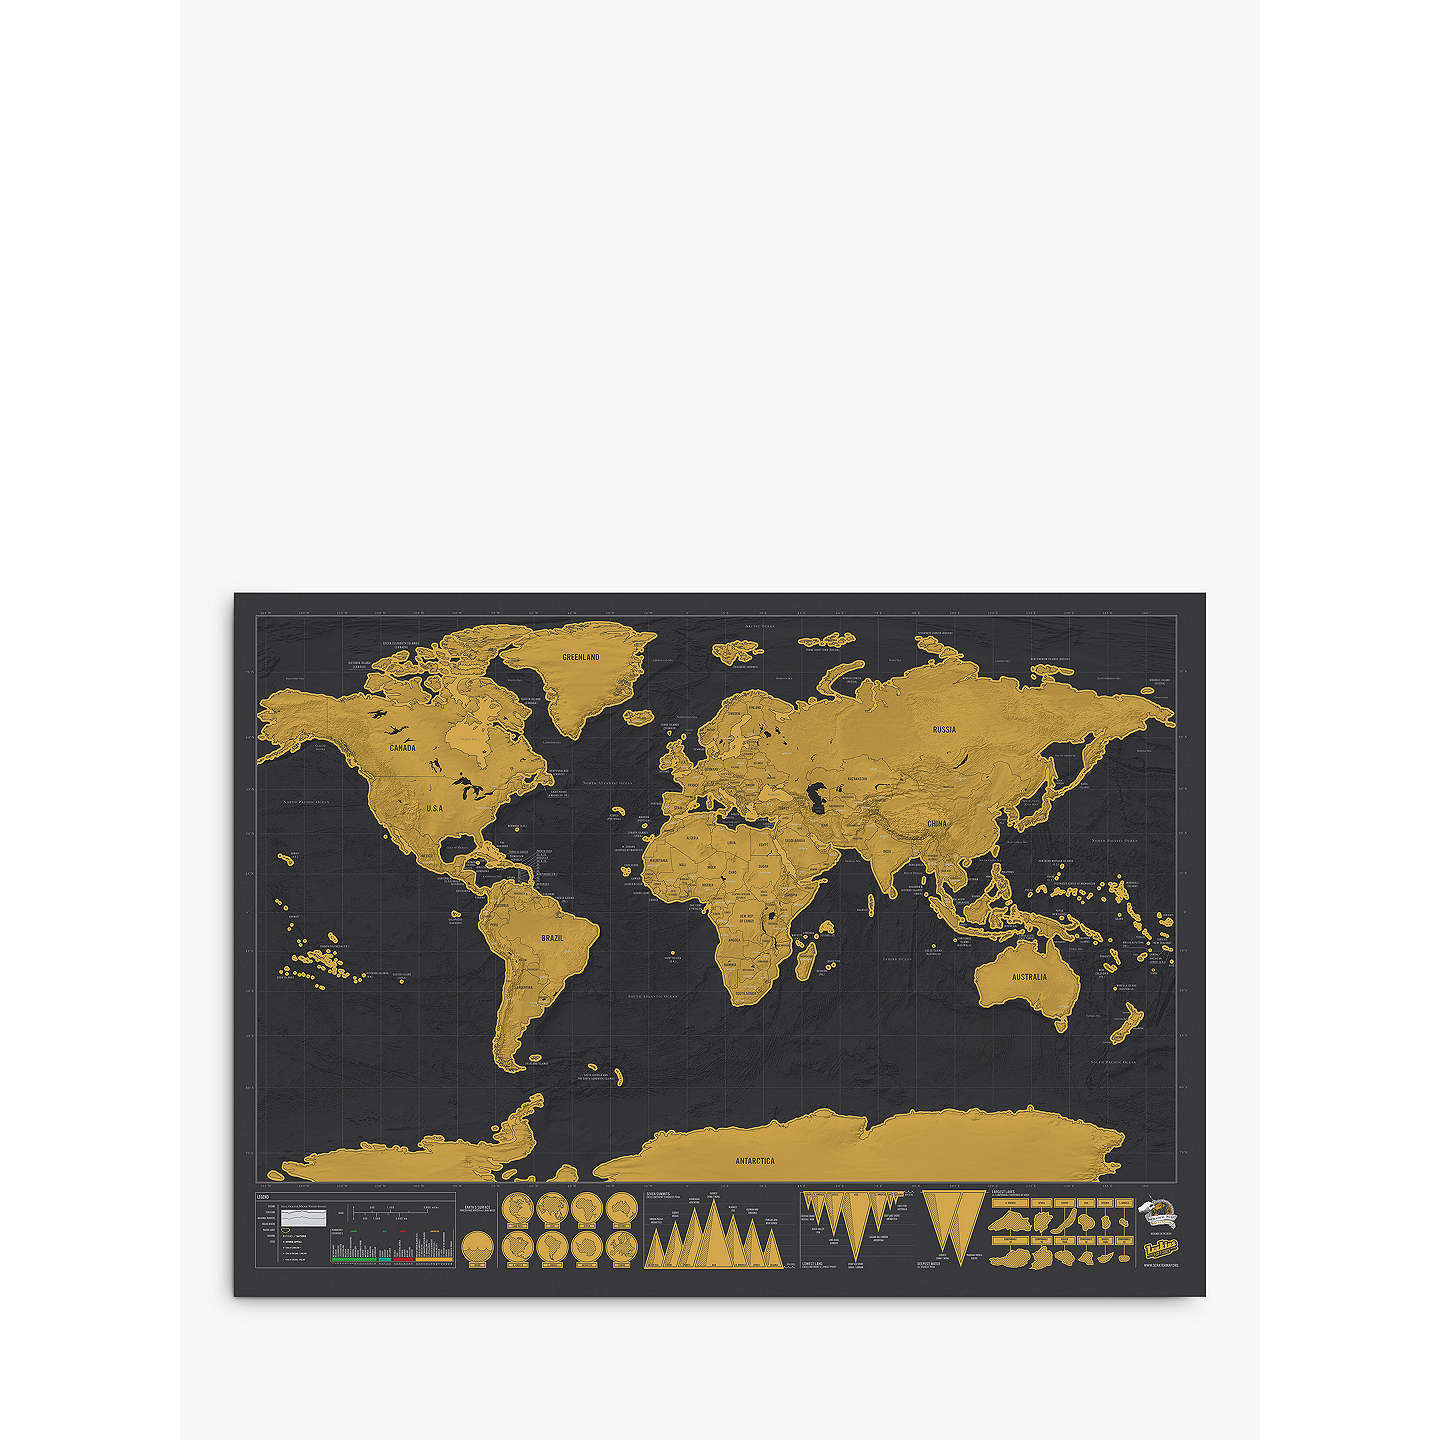 Luckies deluxe scratch map h59 x w82cm at john lewis buyluckies deluxe scratch map online at johnlewis gumiabroncs Images